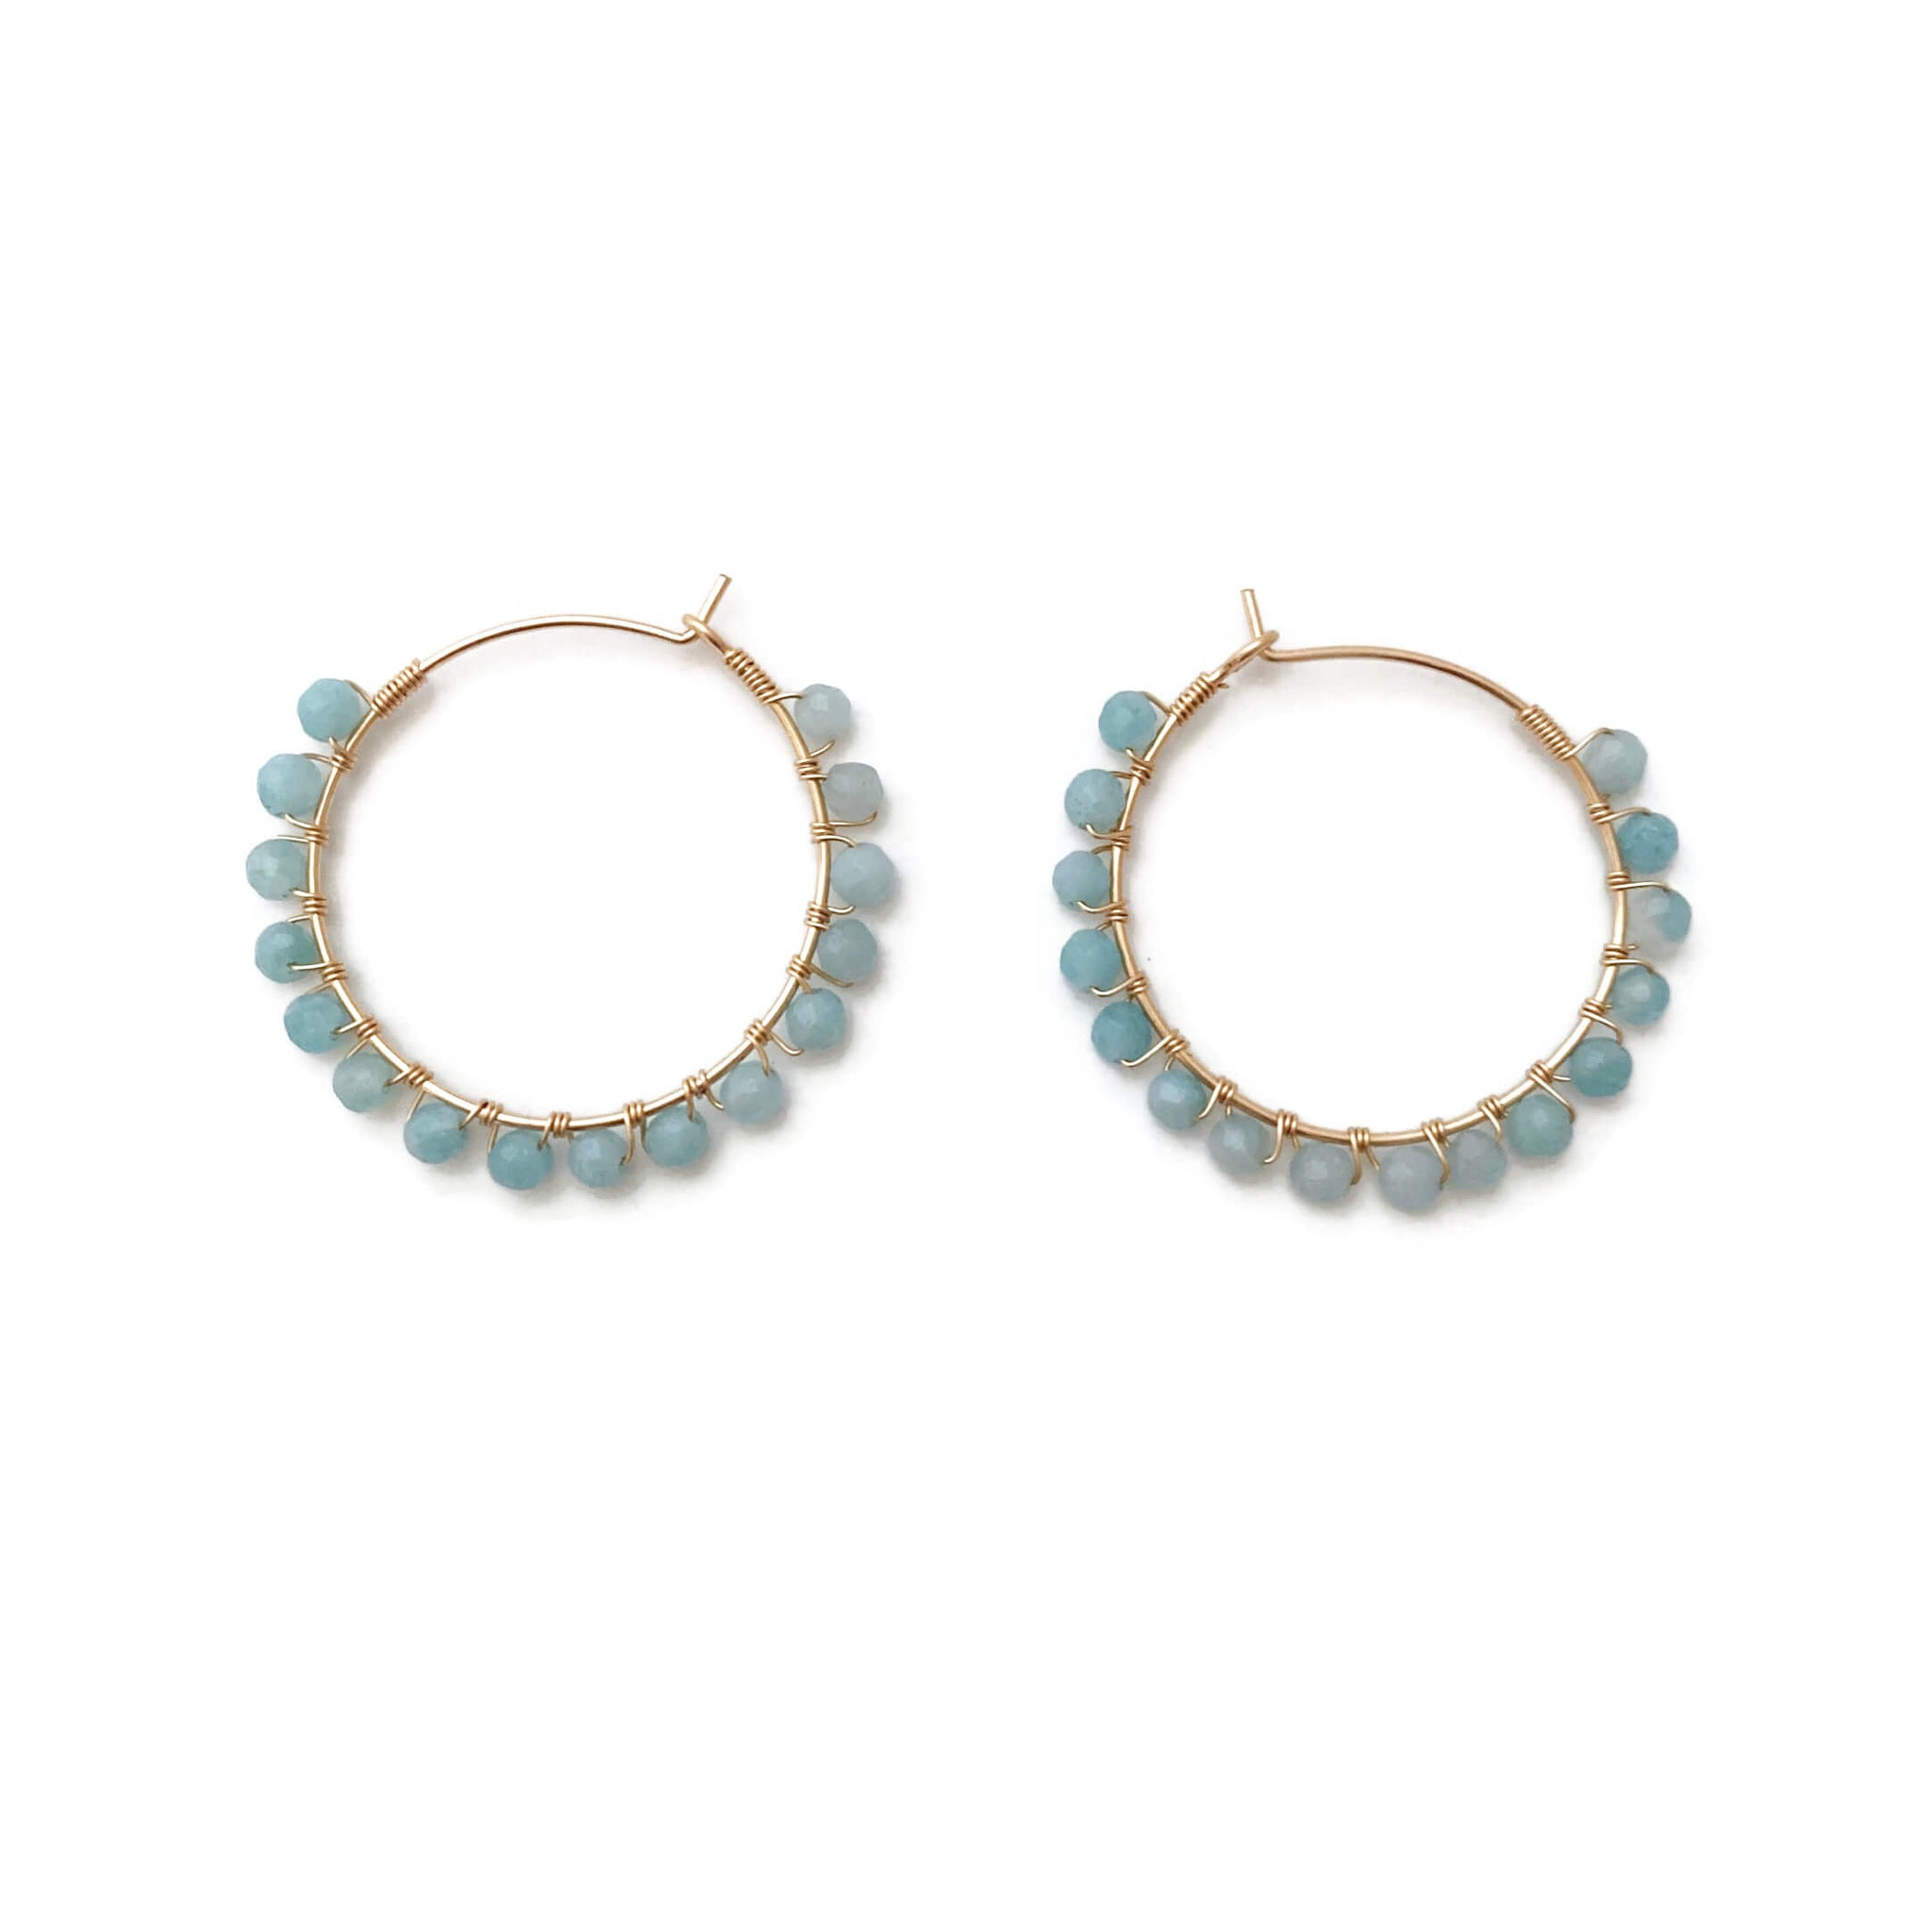 These are amazonite hoop earrings. The color is light blue.  Amazonite is a great gemstone for calming and anti anxiety.